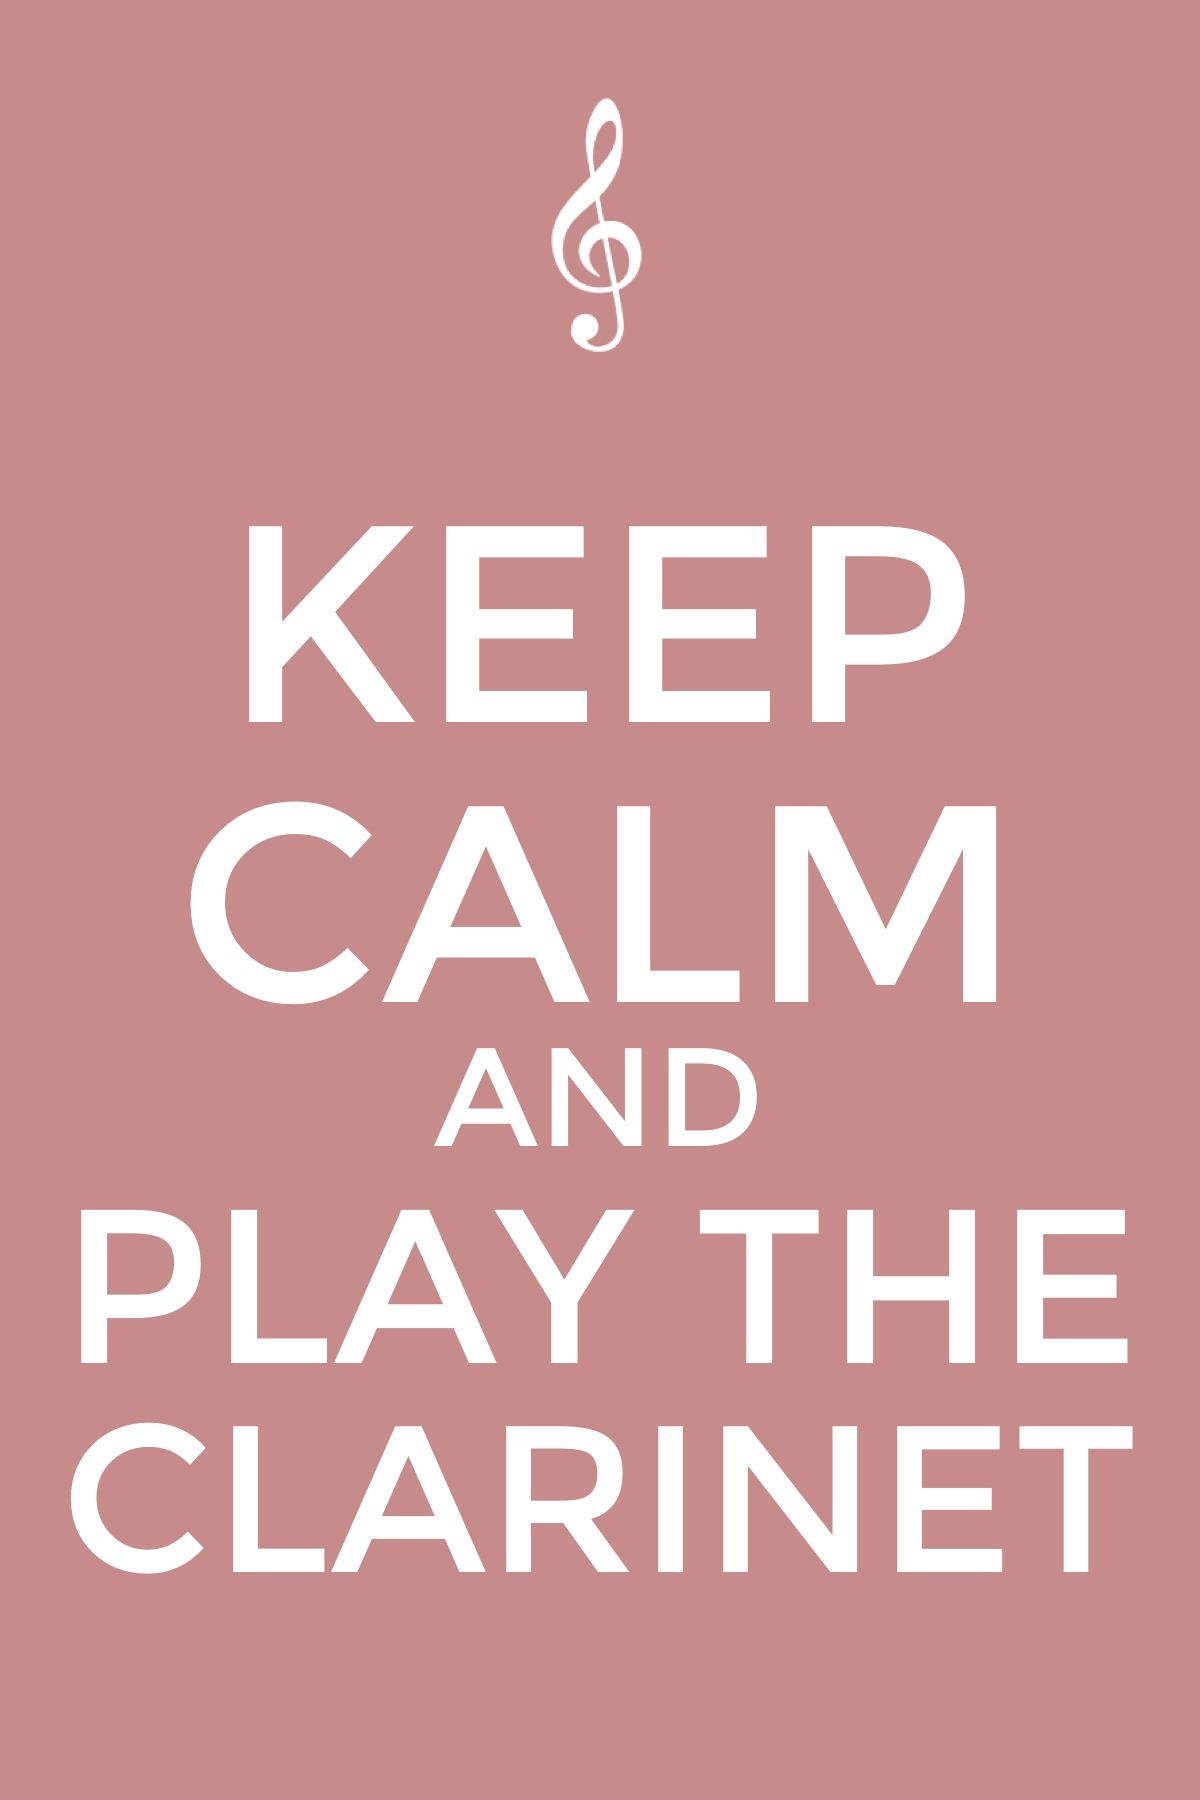 Keep calm and play the clarinet | Music (clarinet) (: | Pinterest ...